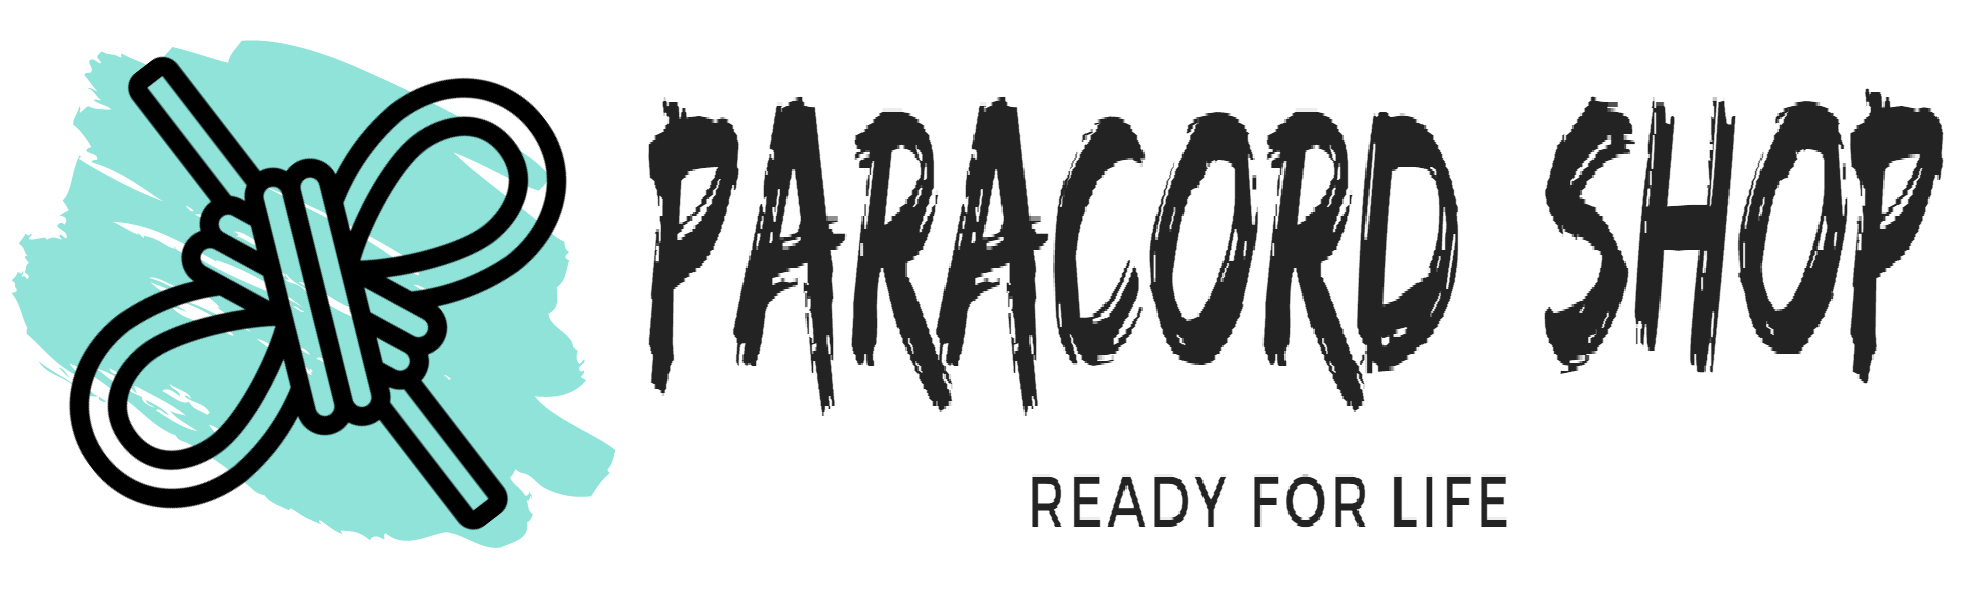 Paracord Shop